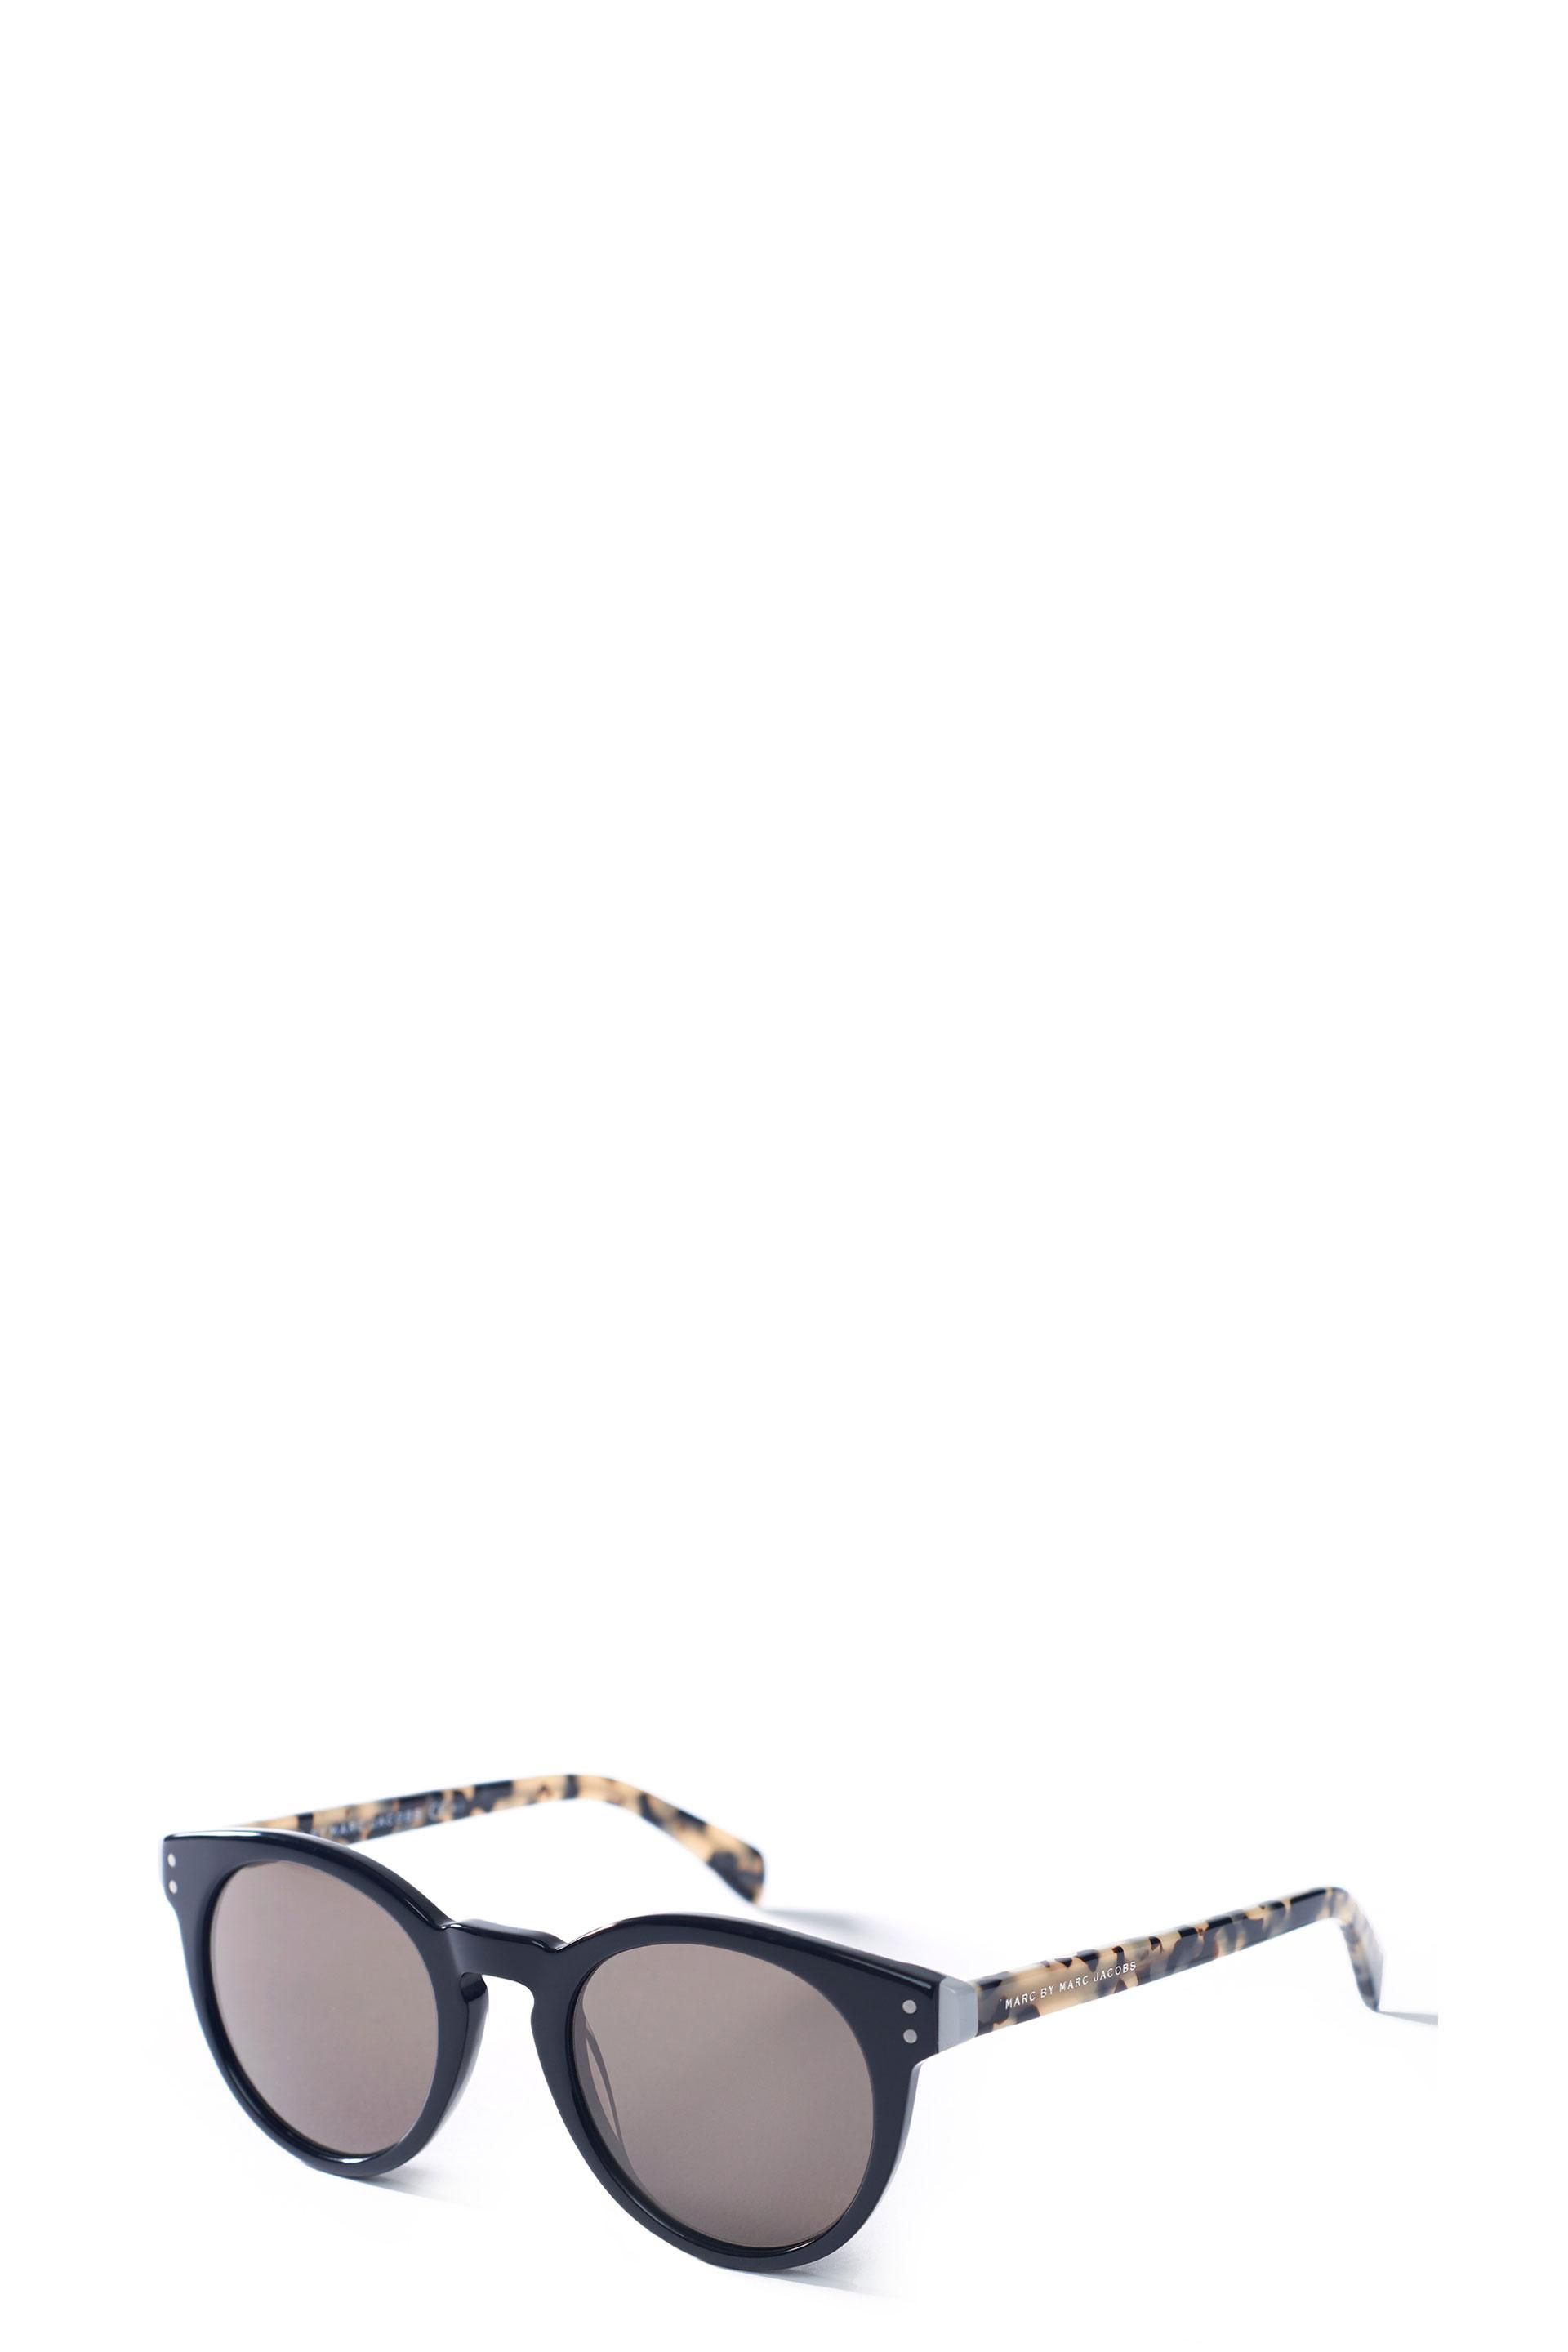 ae2bb5031cac The Marc Jacobs Two Dot Sunglasses feature acetate front and temples with  color-assembled acetates